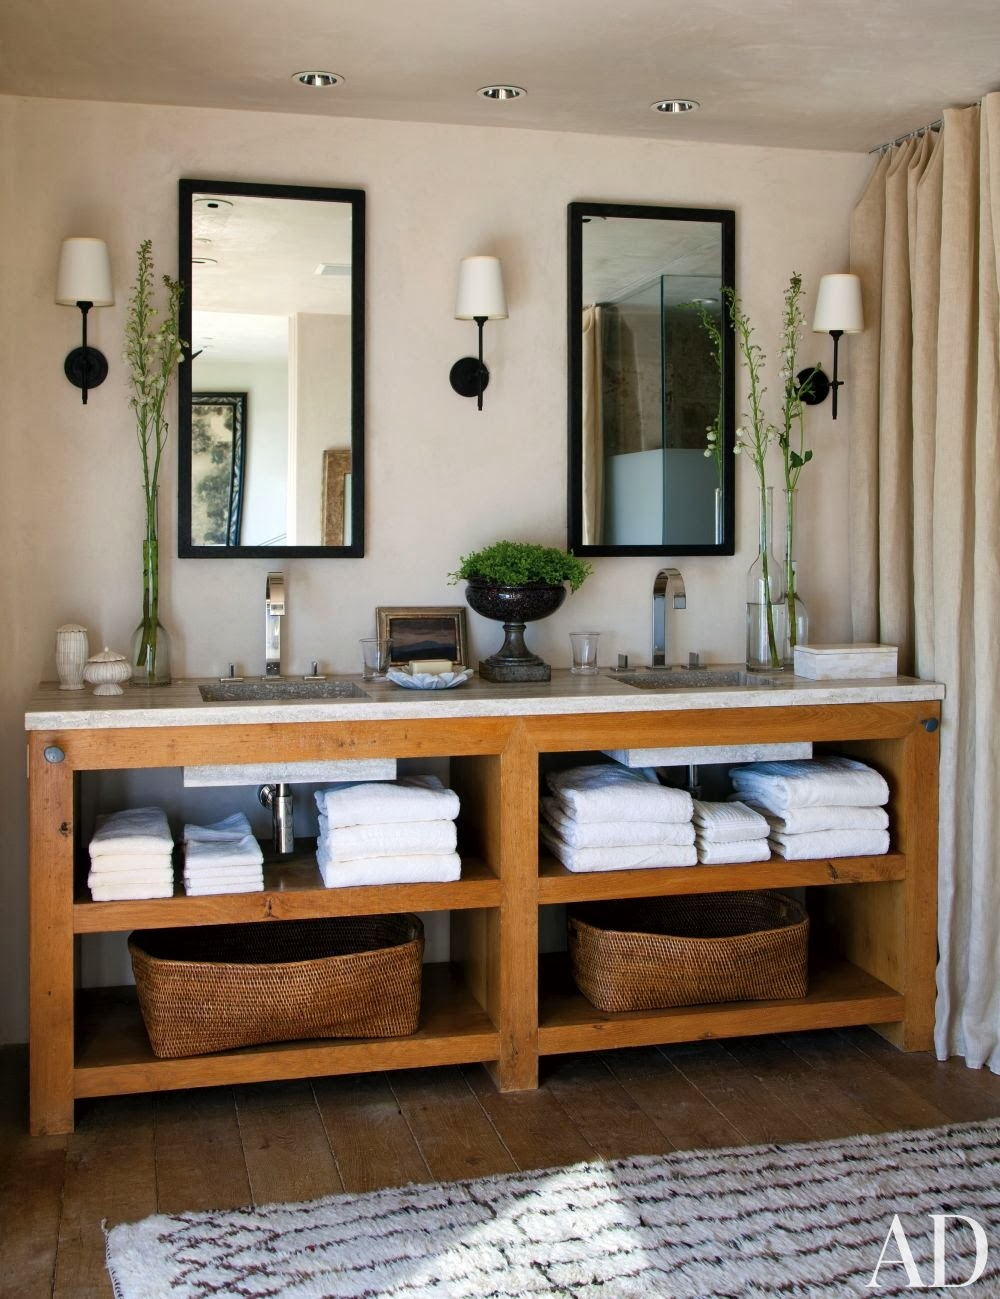 Refresheddesigns seven stunning modern rustic bathrooms for Meuble salle de bain rustique